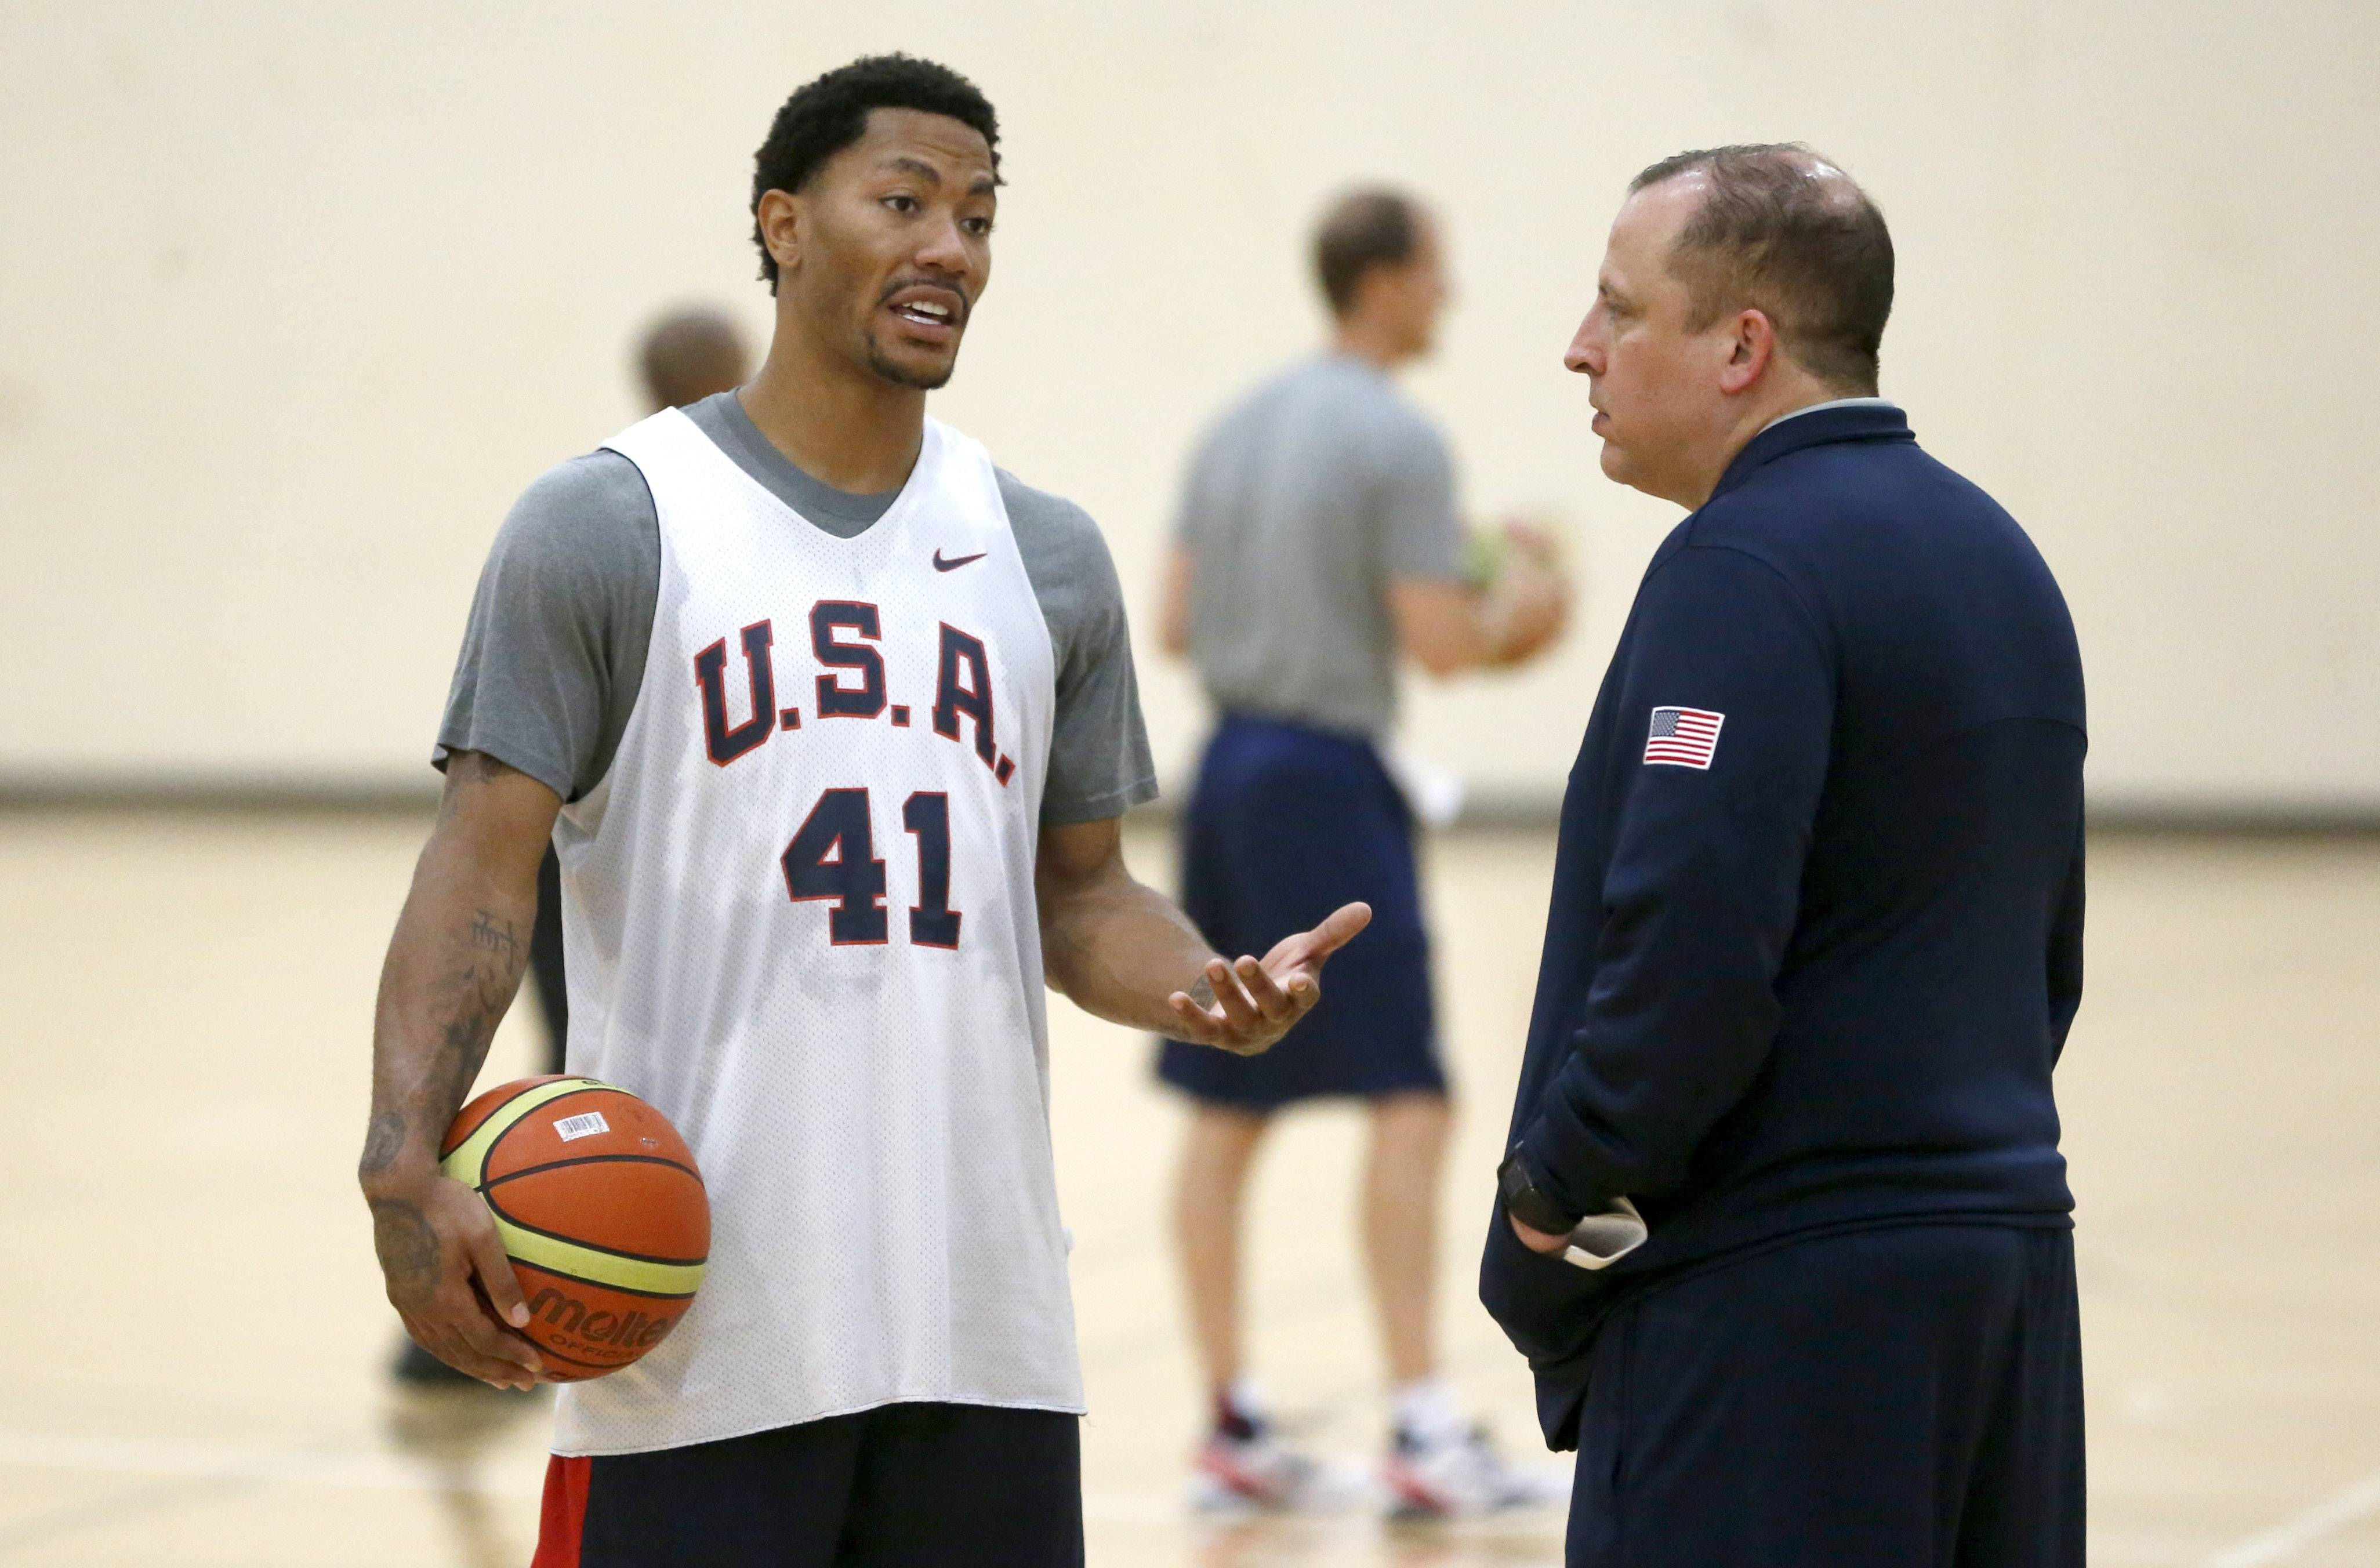 Derrick Rose, left, said that he has enjoyed discussions on a variety of topics with Team USA assistant coach Tom Thibodeau as they prepare for the FIBA World Cup of Basketball,